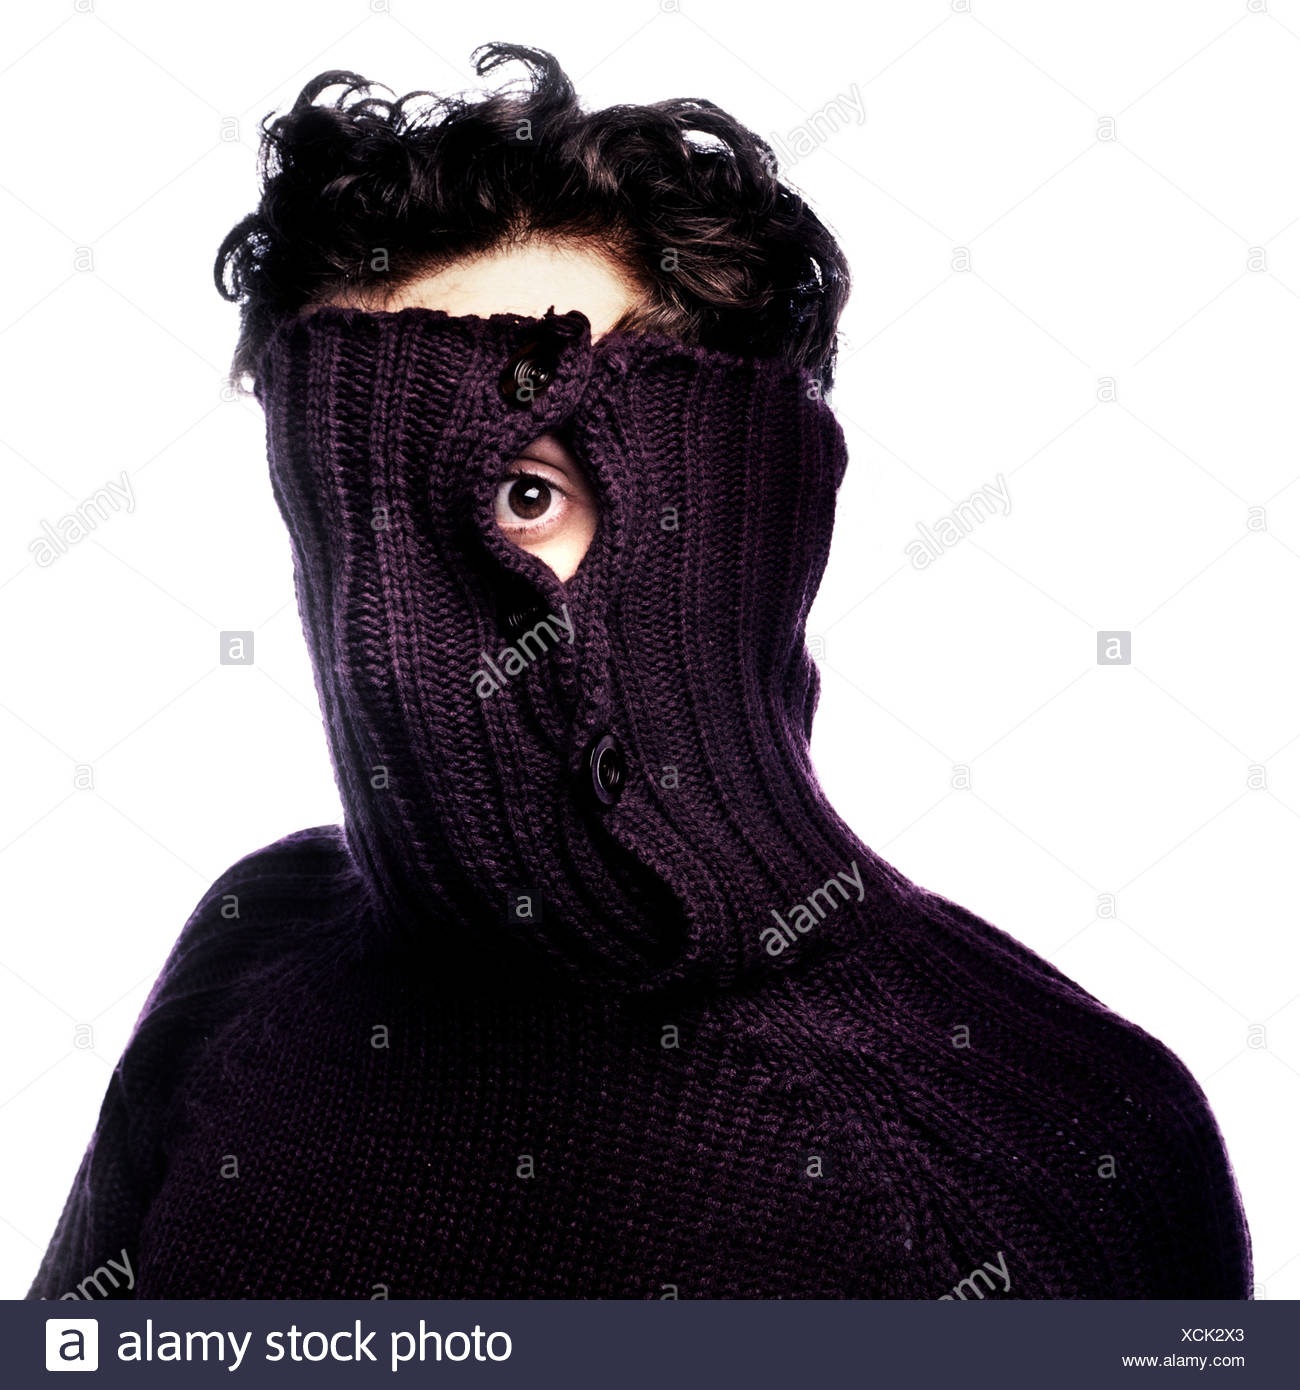 Portrait of man in oversize pullover - Stock Image